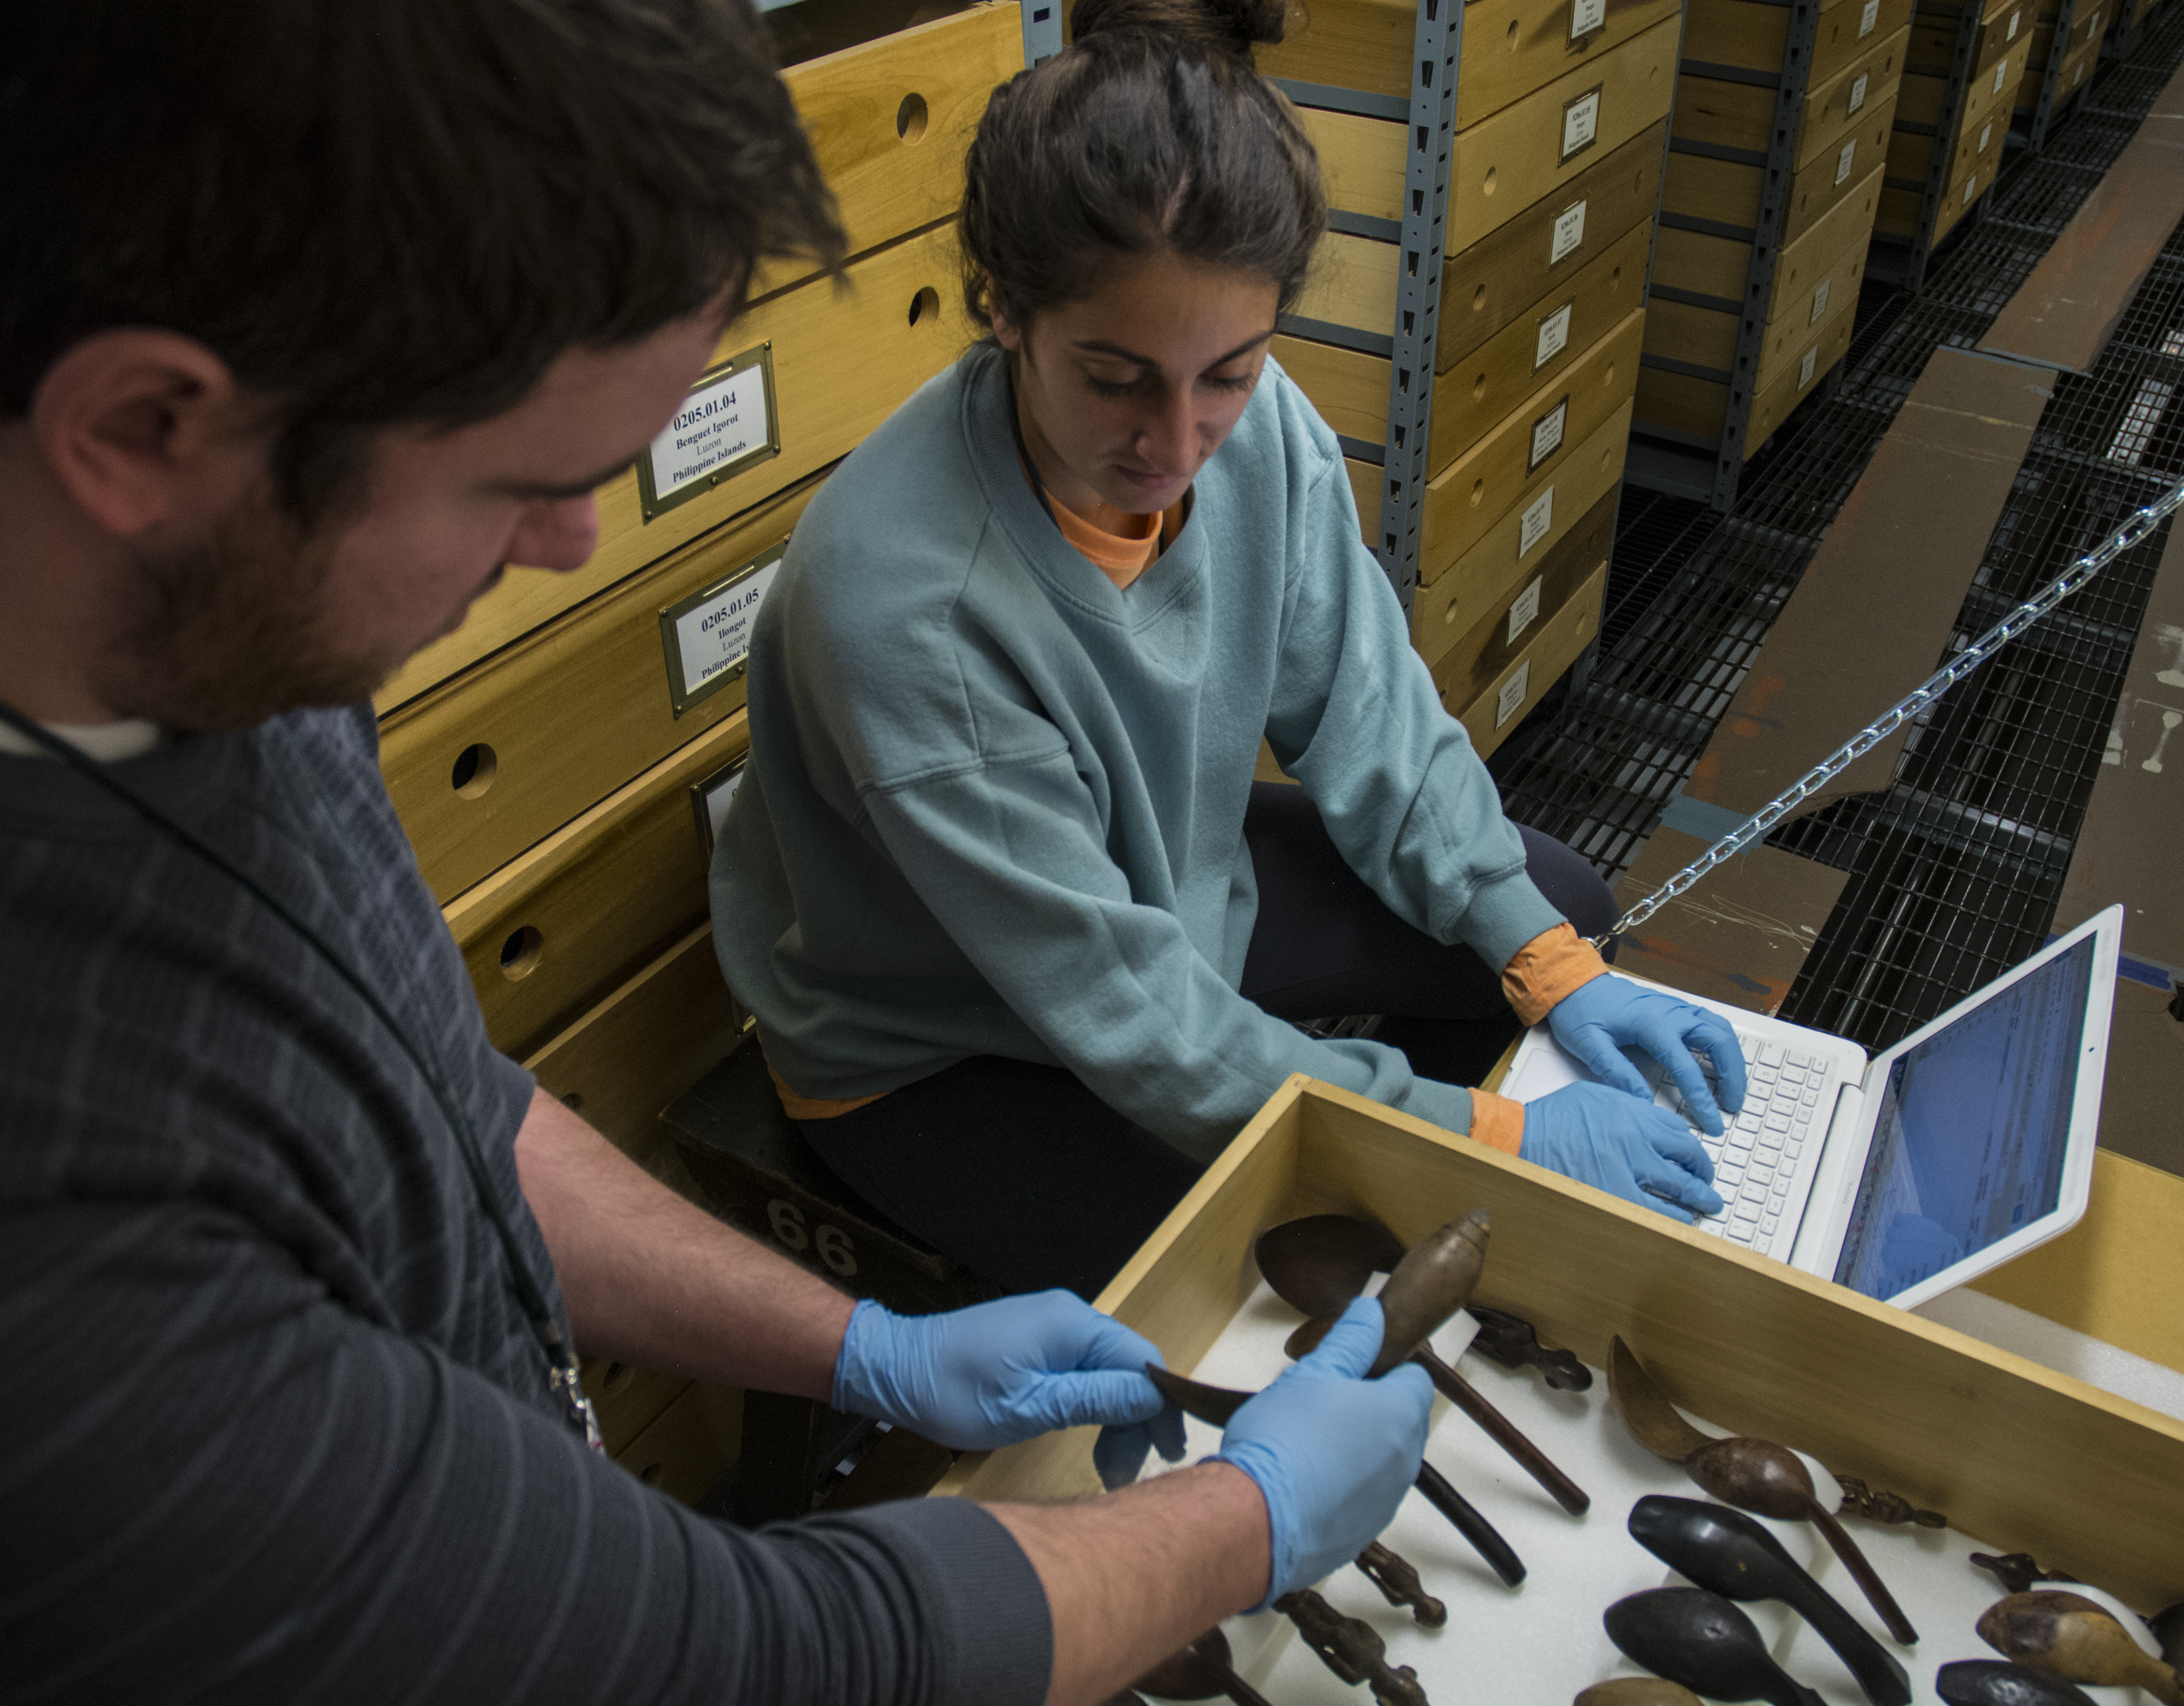 Image depicting volunteers Dustin Weddle and Bronwen Phillips inventorying objects within CAS Mezzanine storeroom. Selected for use on the homepage of the Philippine Heritage Collections interactive web portal. (c) Field Museum of Natural History - CC BY-NC